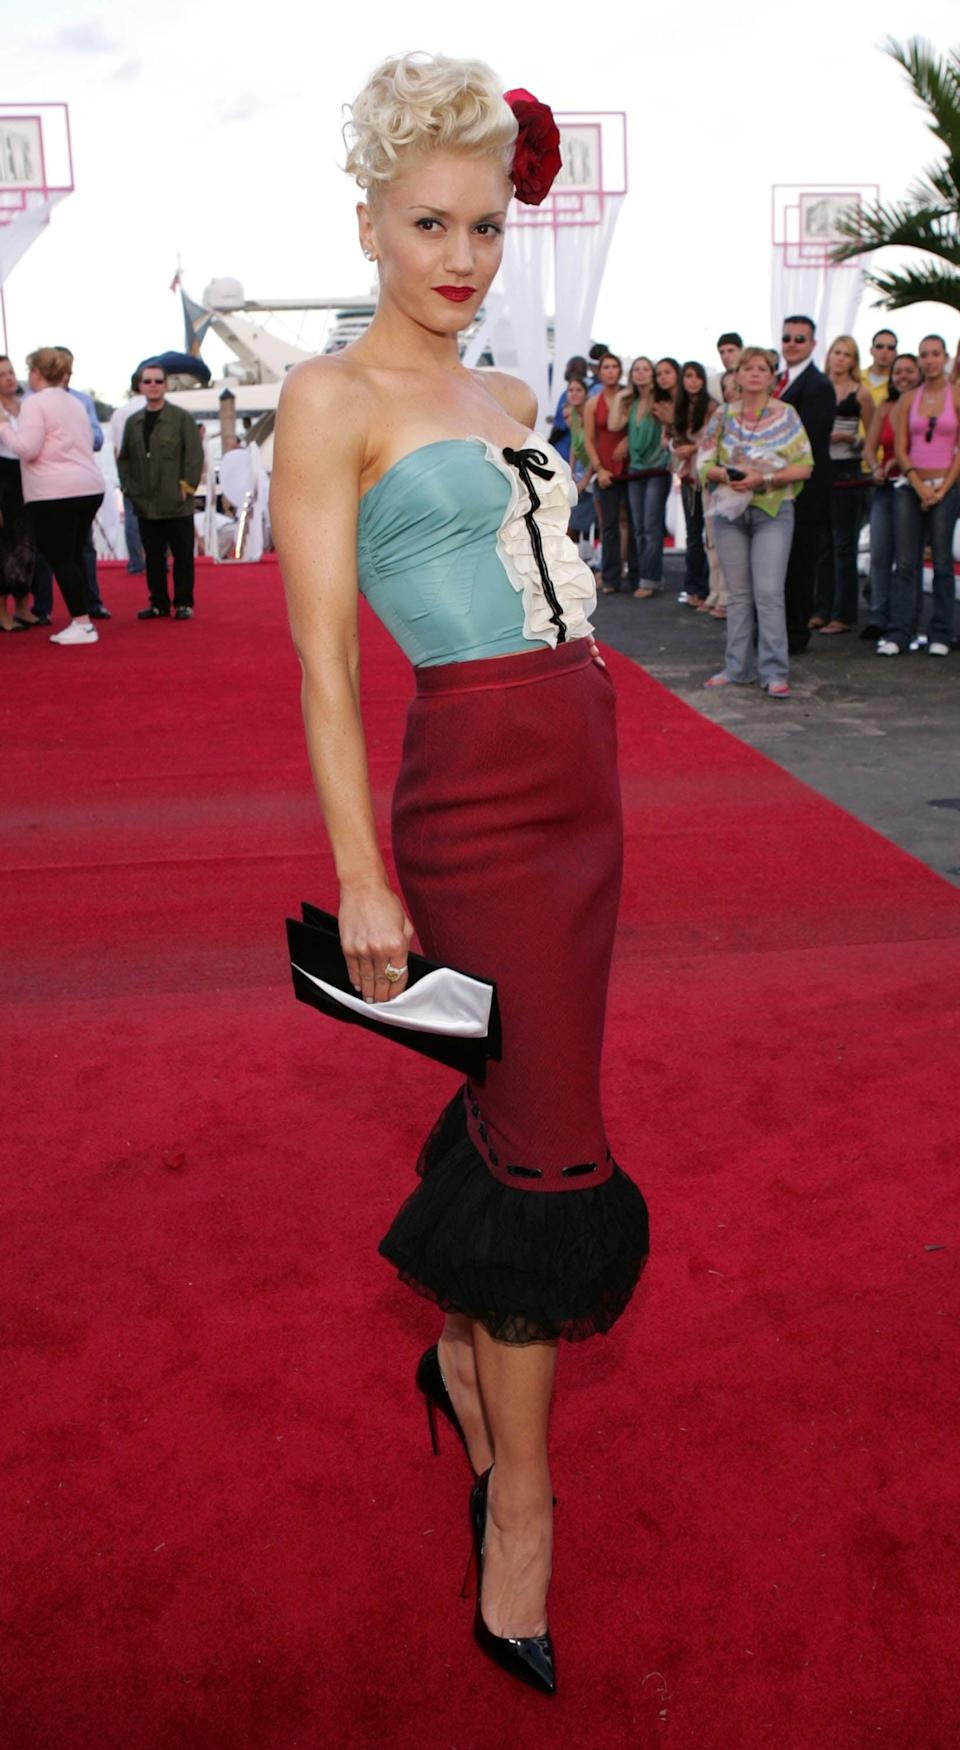 <p>Attending the 2004 MTV Video Music Awards wearing a blue tube top and red pencil skirt.</p>